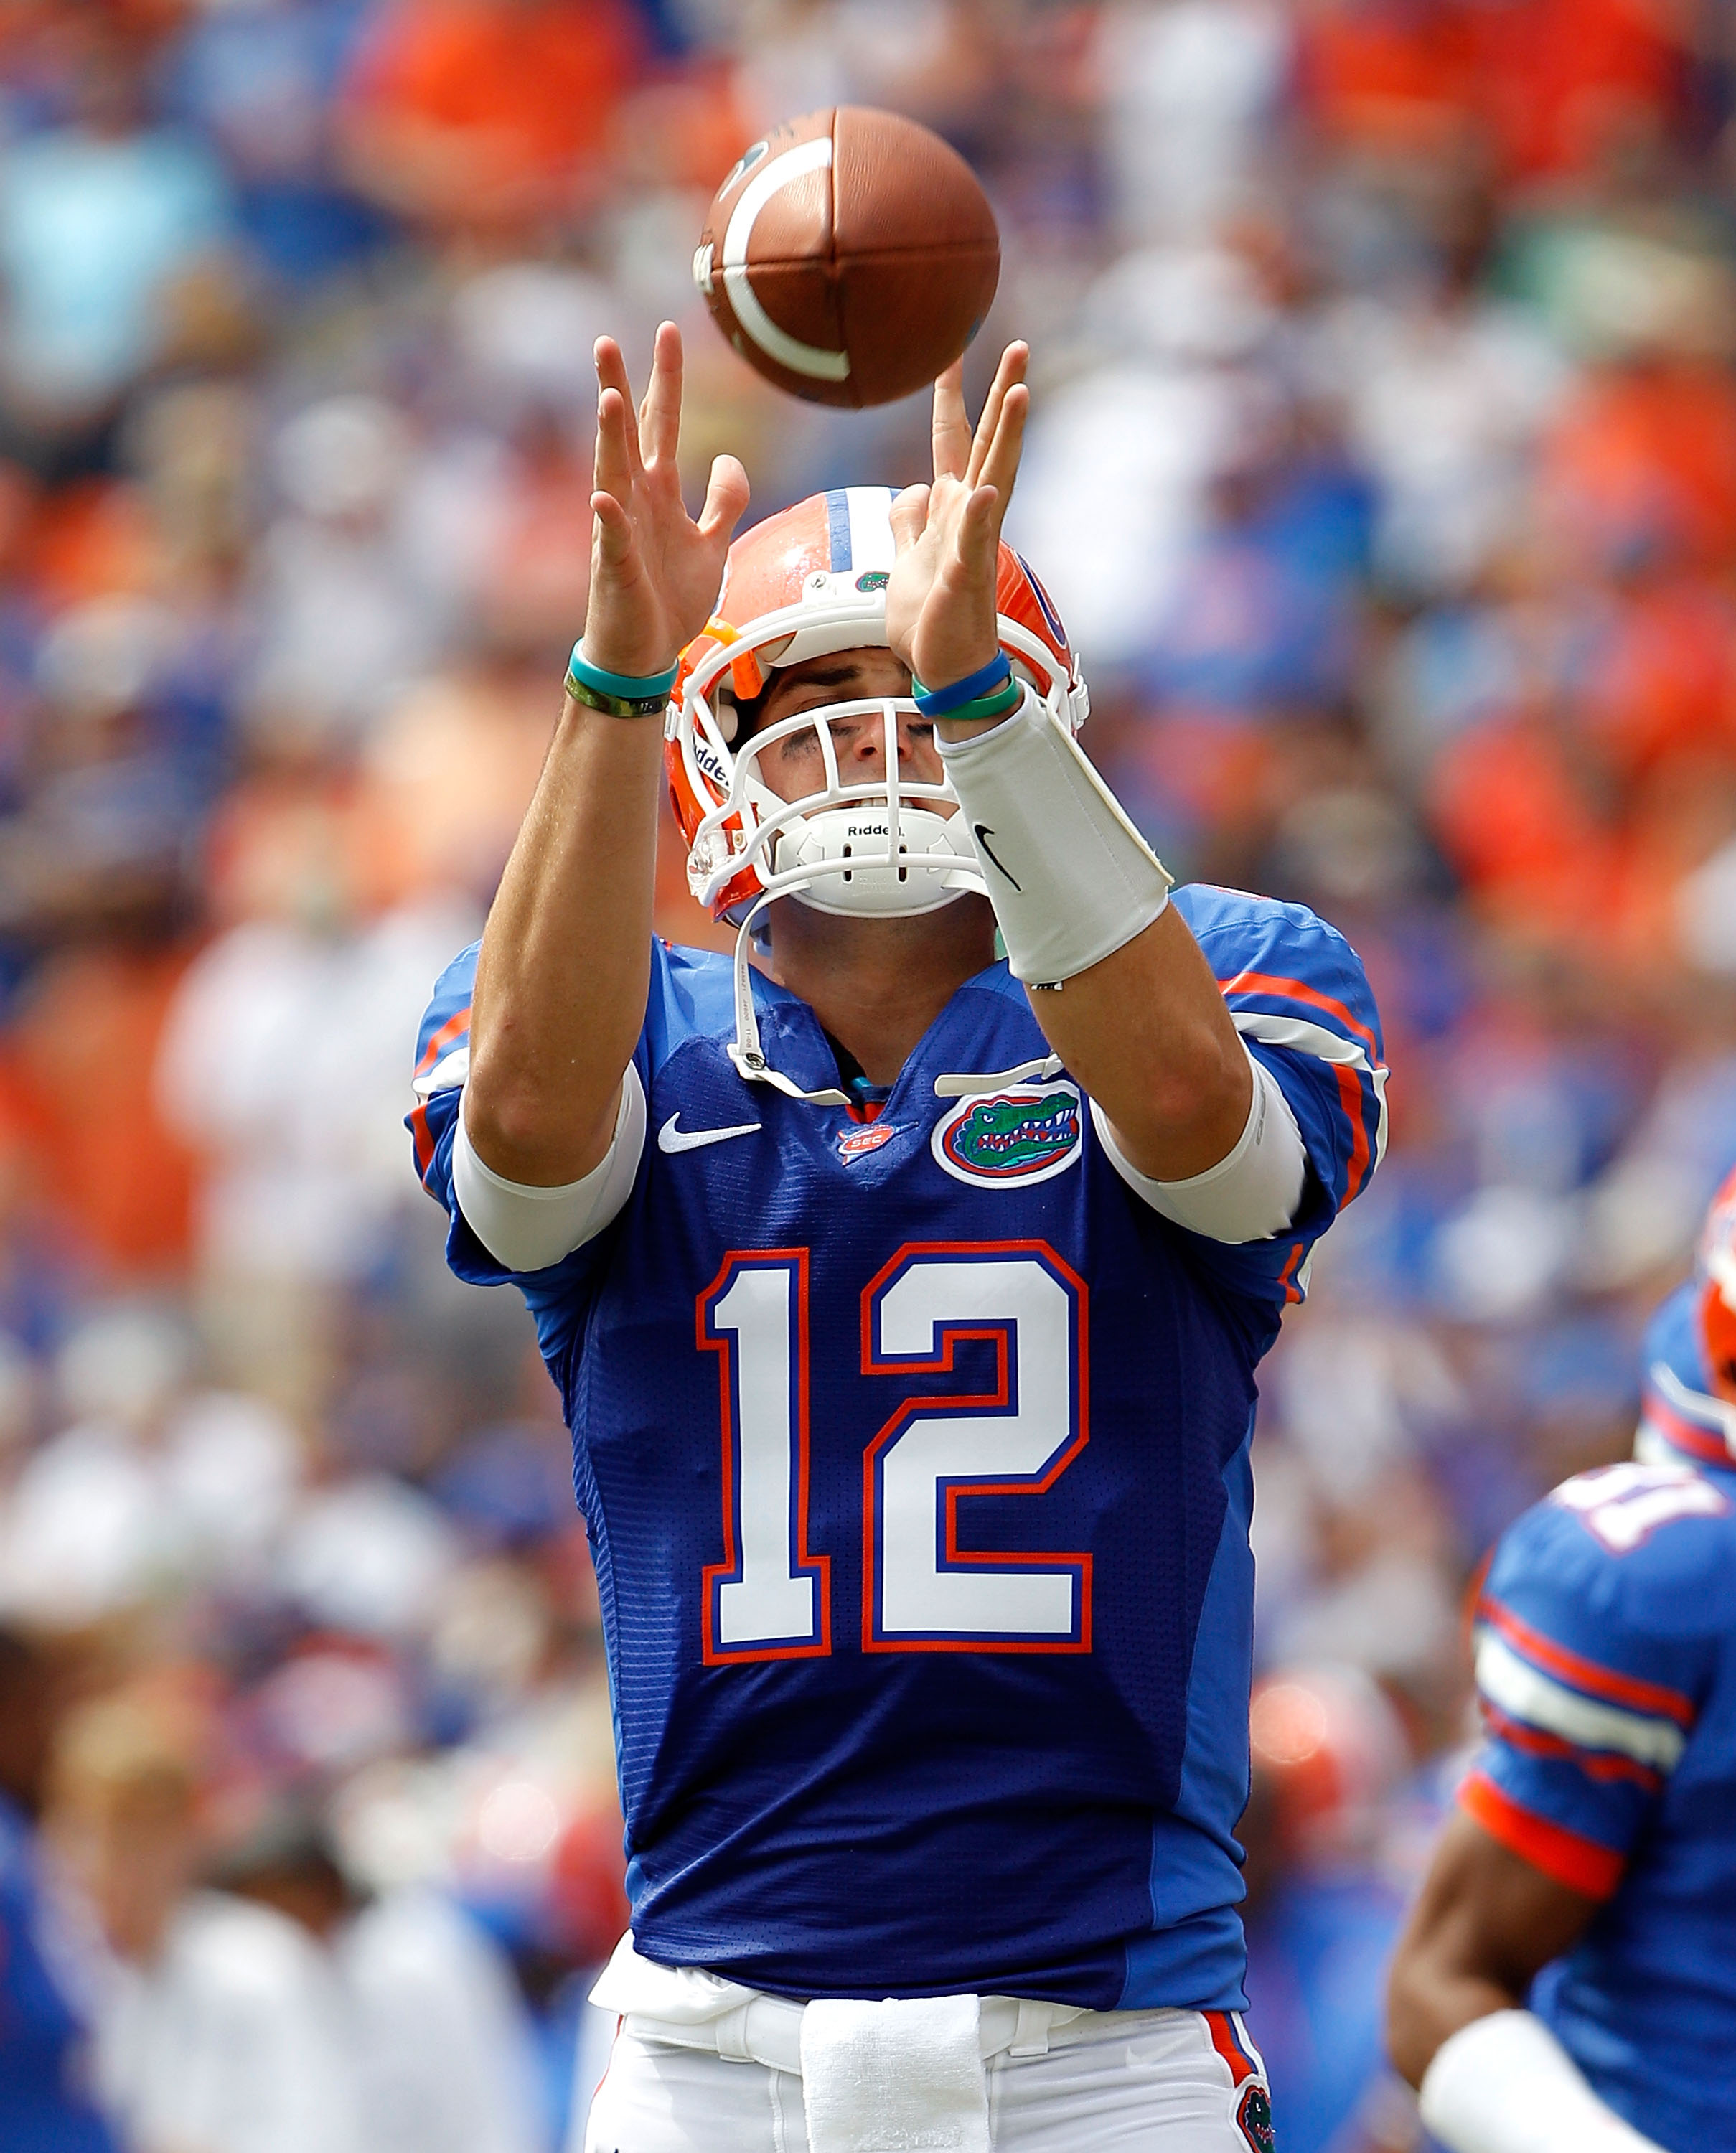 Florida Football: Why John Brantley Transferring Would Benefit the ...